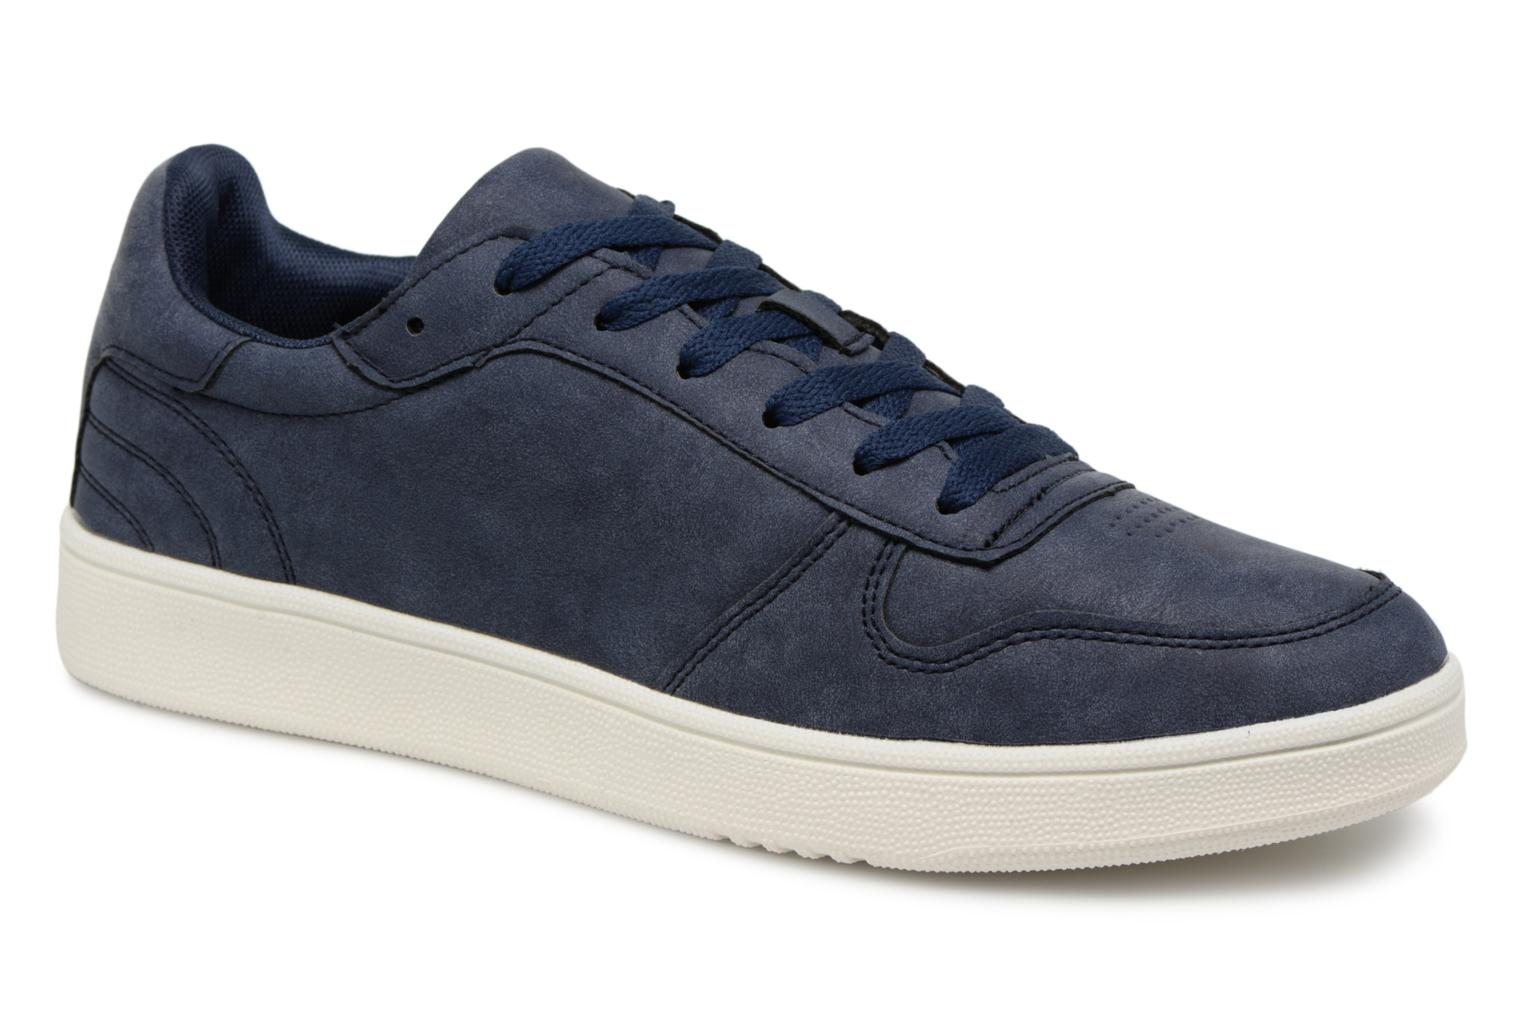 Marques Chaussure homme I Love Shoes homme KEDRILLO Leather Navy